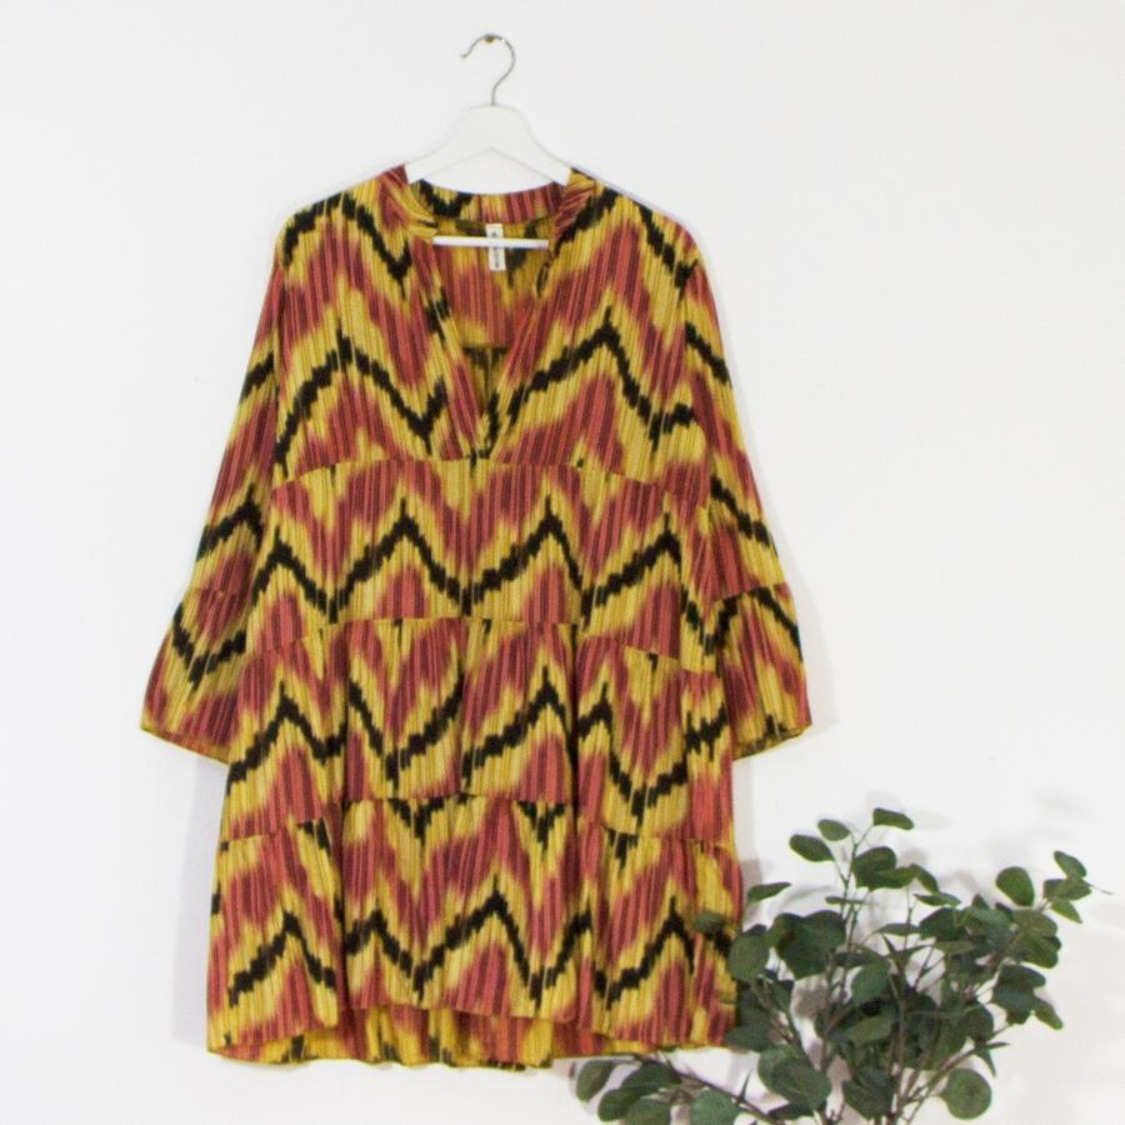 Zig zag print smock tunic/dress